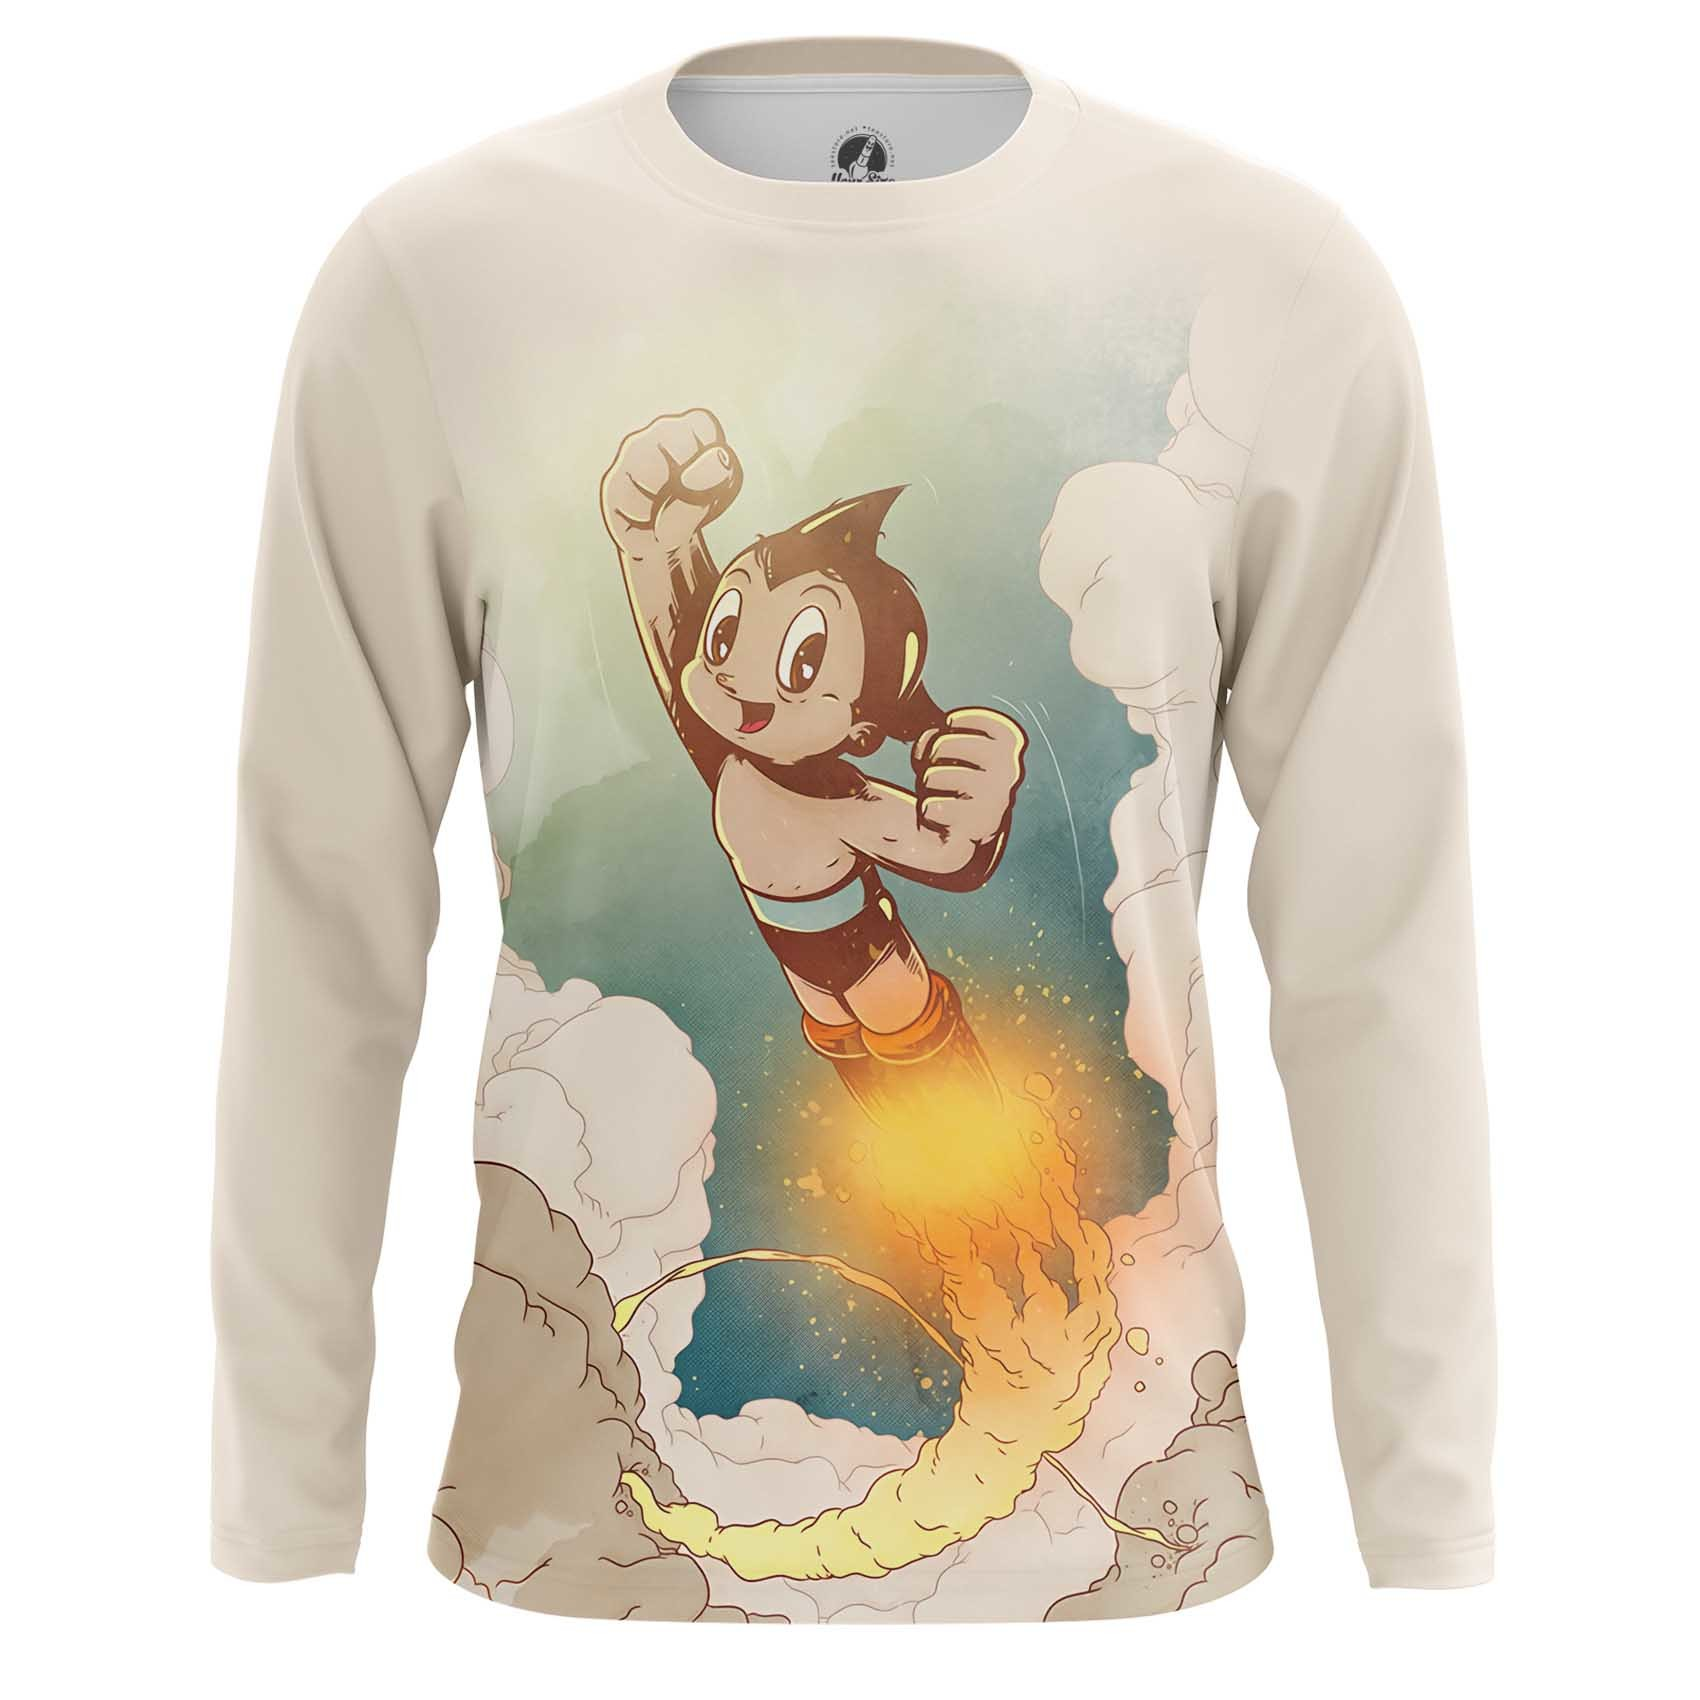 Collectibles T-Shirt Astro Boy Inspired Astroboy Japanese